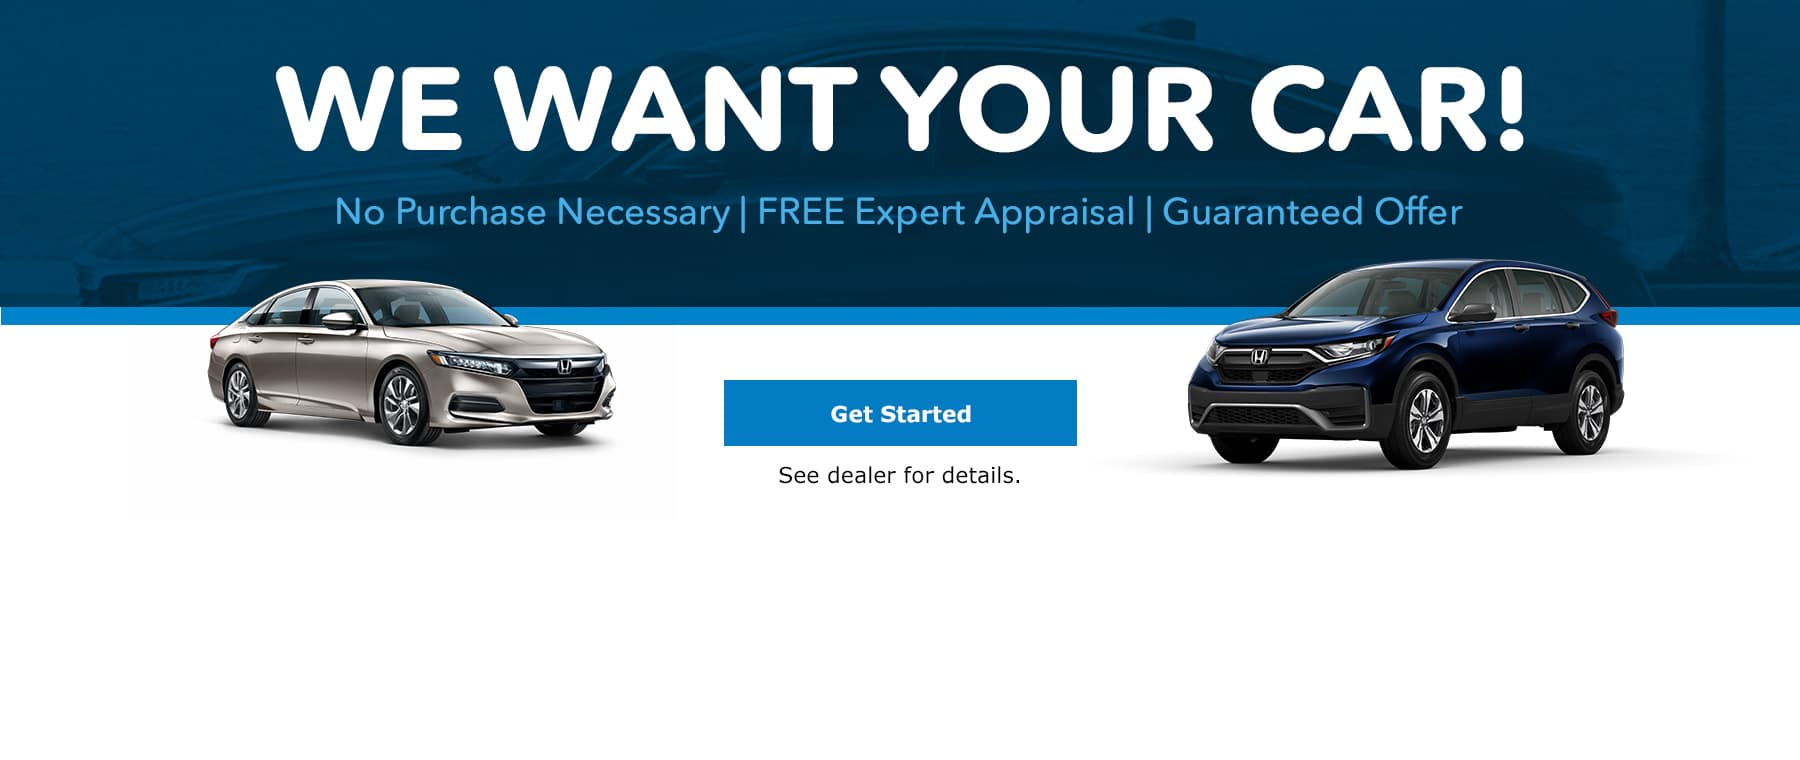 we want your car